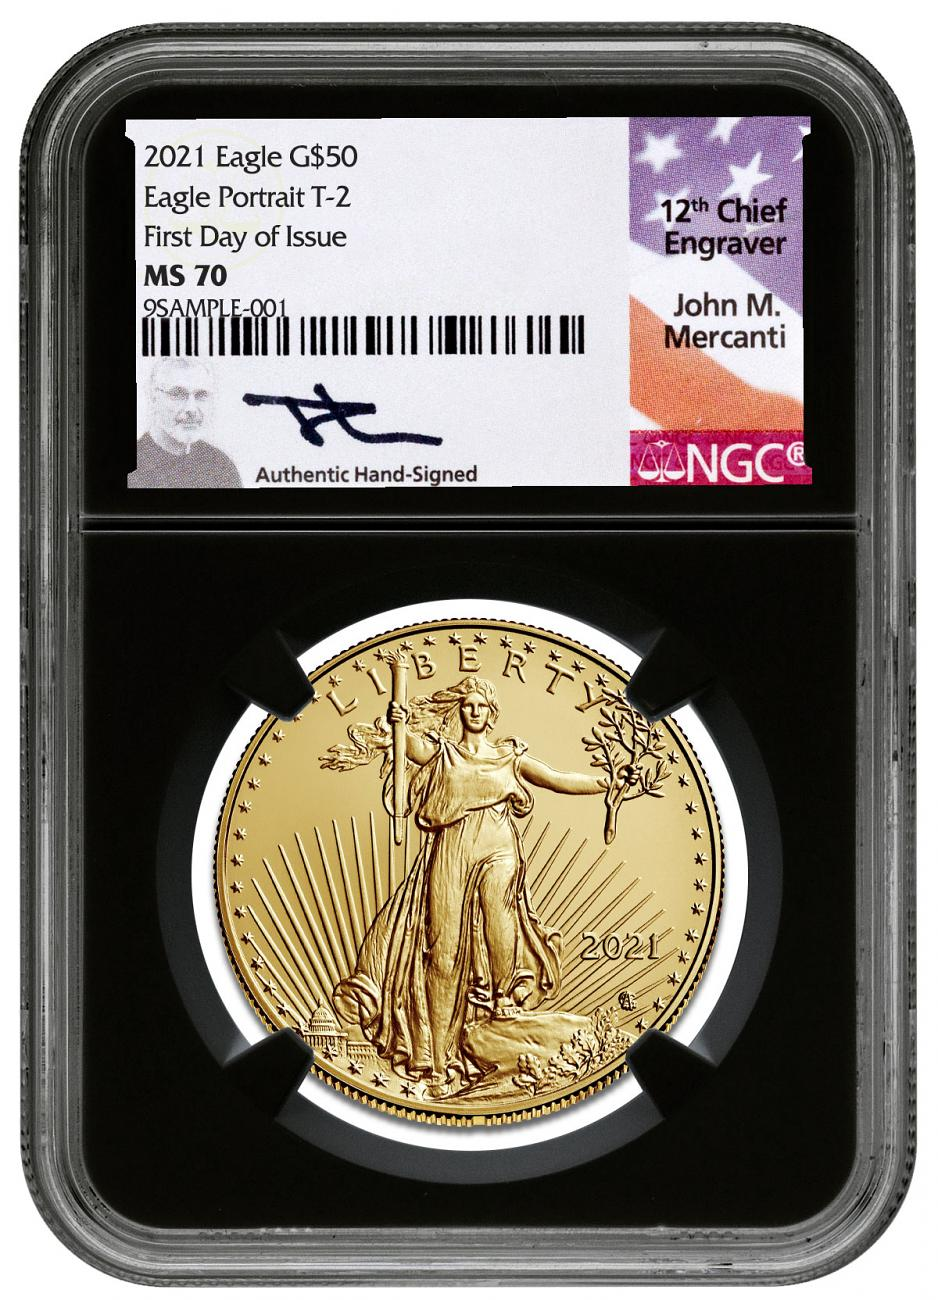 2021 1 oz Gold American Eagle Type 2 $50 Scarce and Unique Coin Division NGC MS70 FDI Black Core Holder Mercanti Signed Label